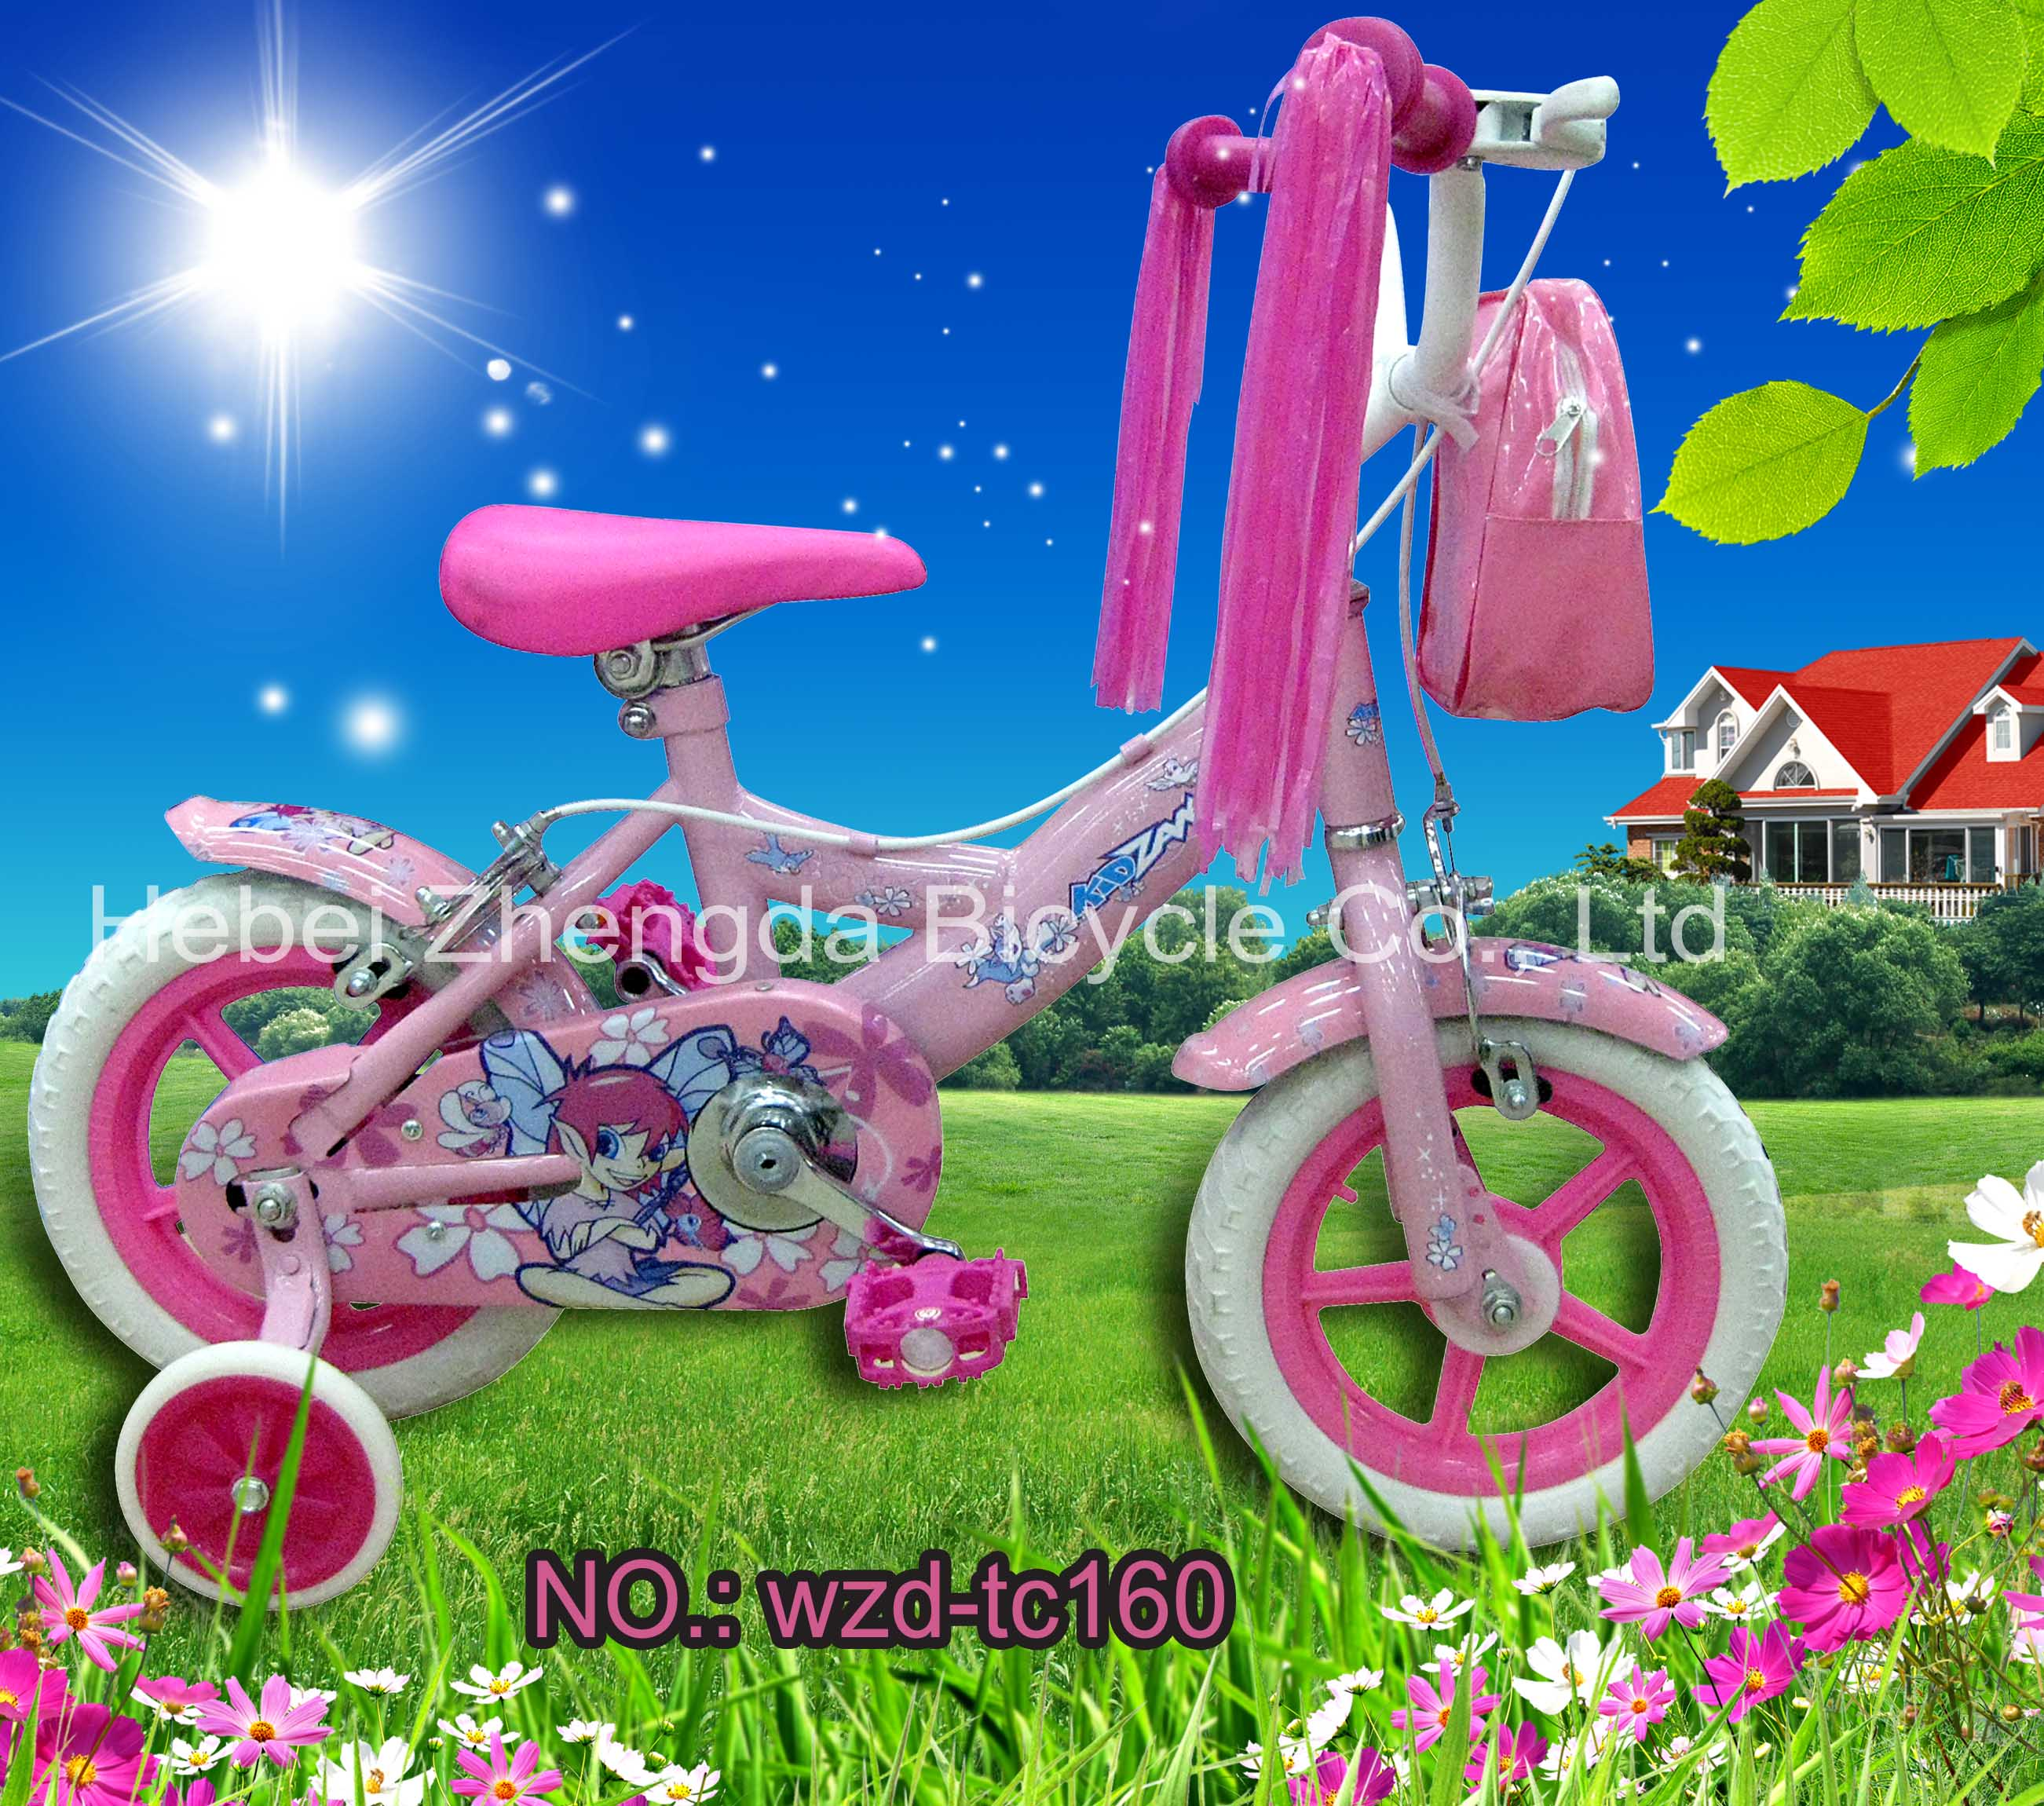 children's bicycle made in China